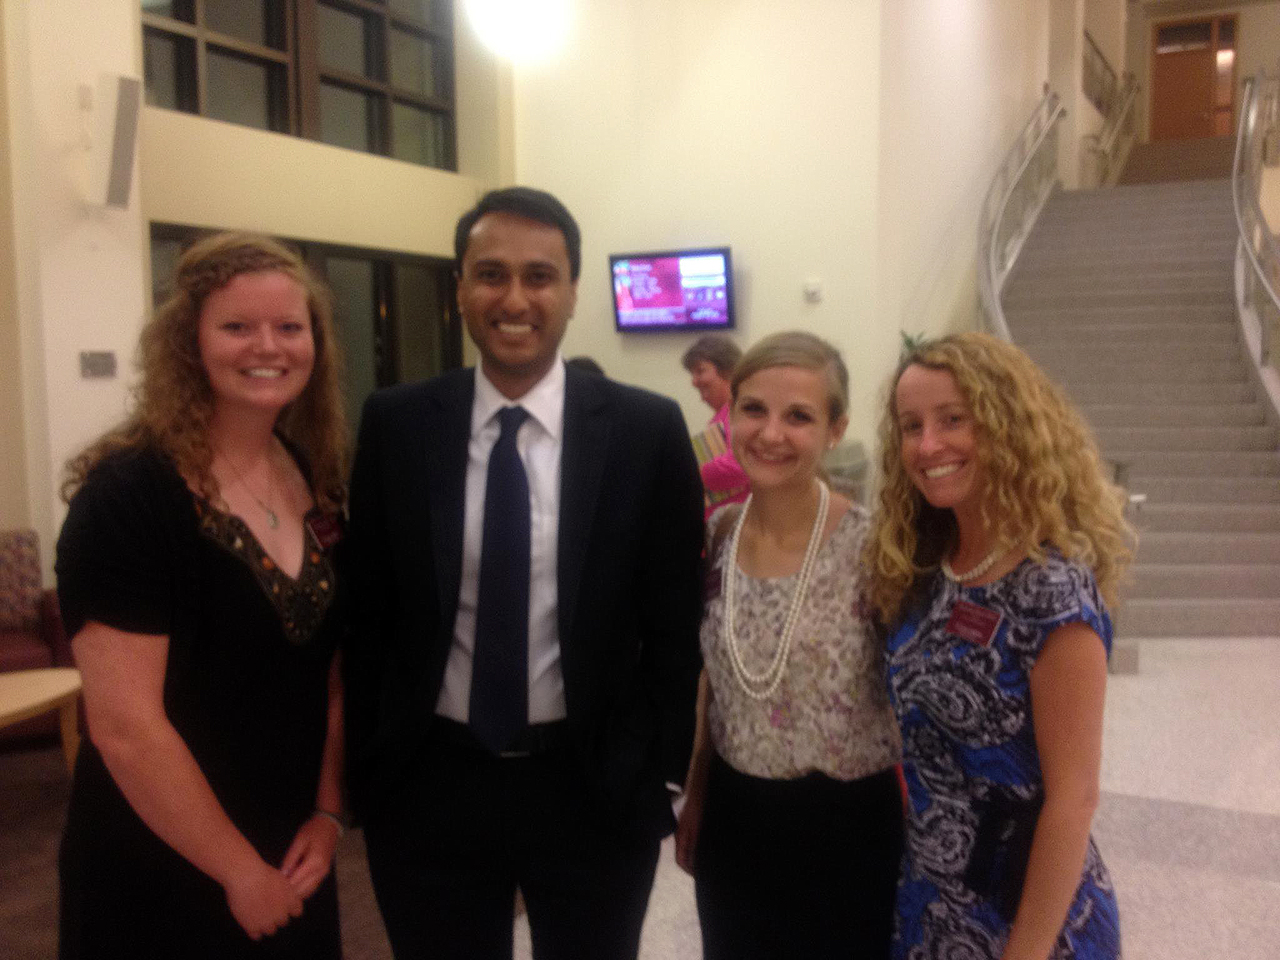 Photo submitted by Anastasia Young. Interfaith scholars pose with Dr. Bath and Eboo Patel.